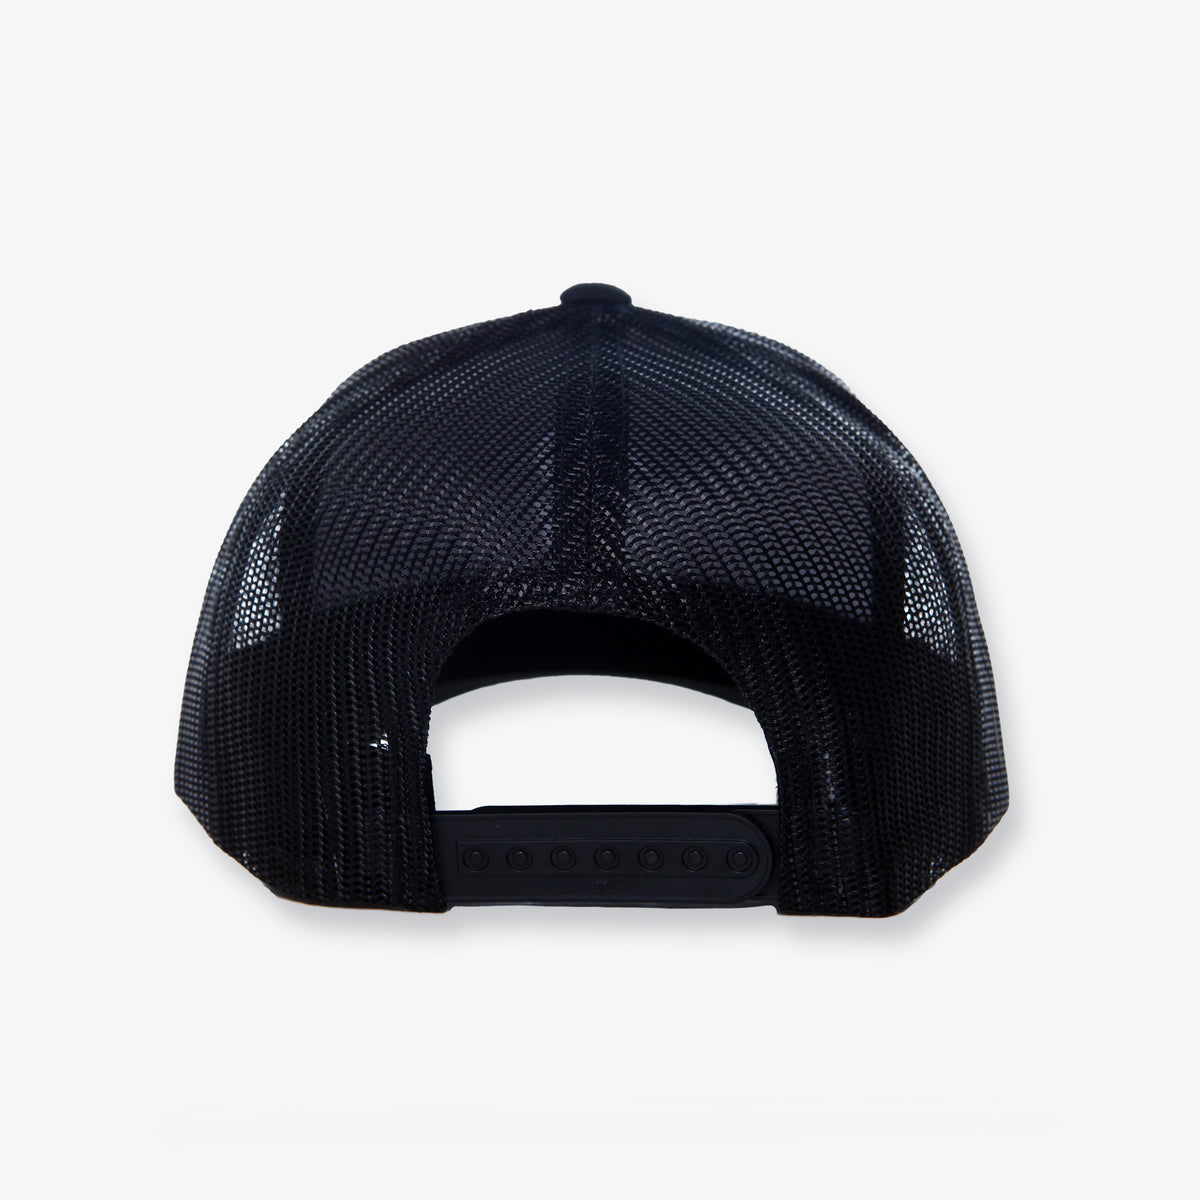 Tower Mesh Hat - Black